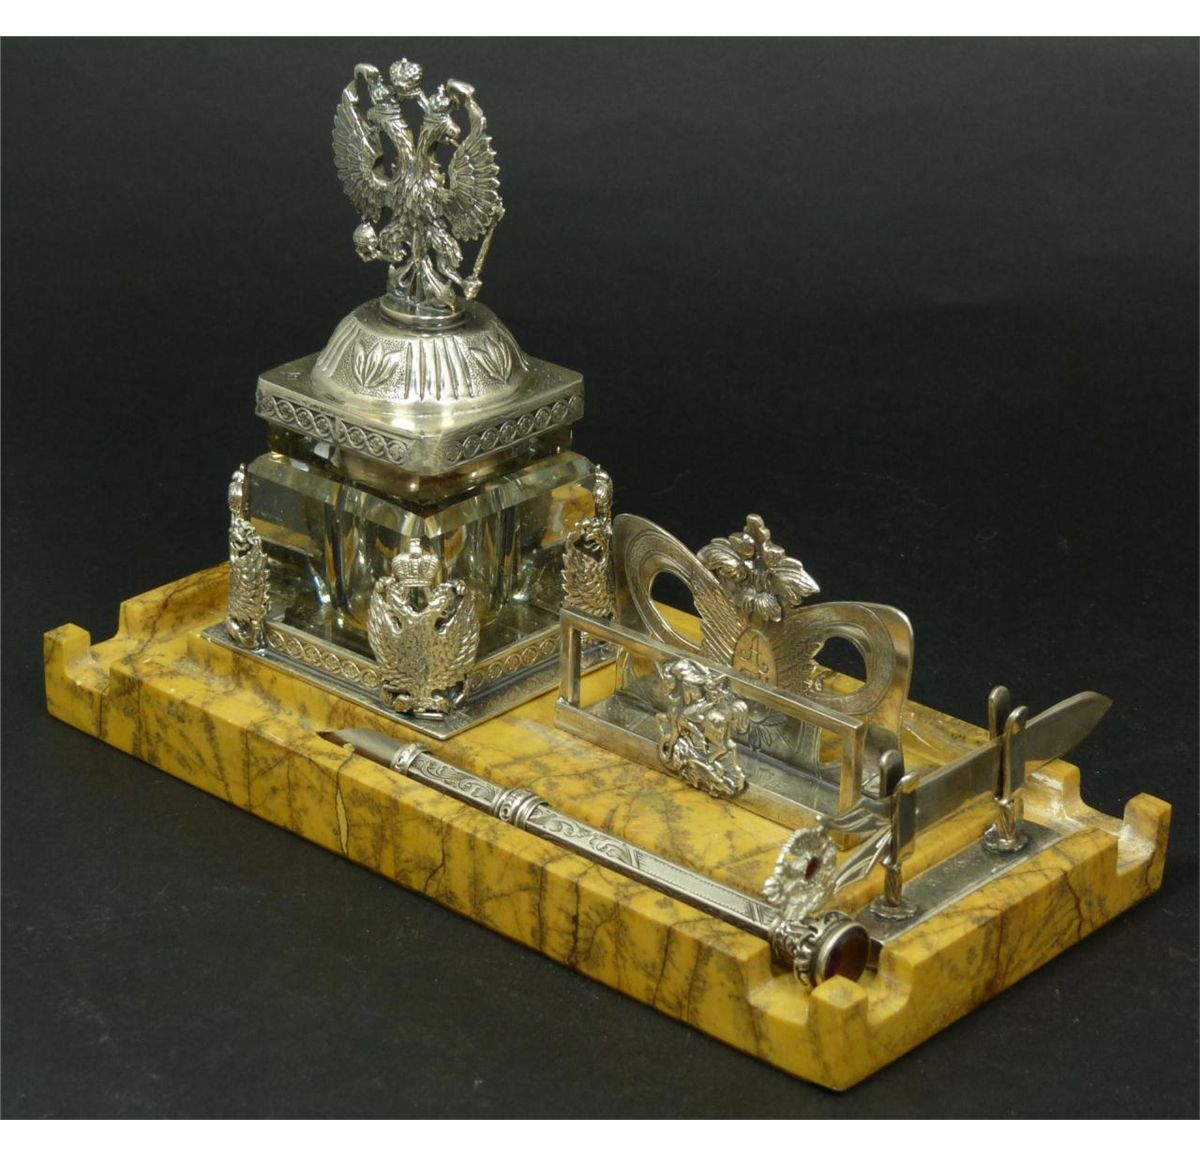 3 Piece Russian Silver Marble Inkwell Desk Set Russian Silver Antique Inkwells Inkwell